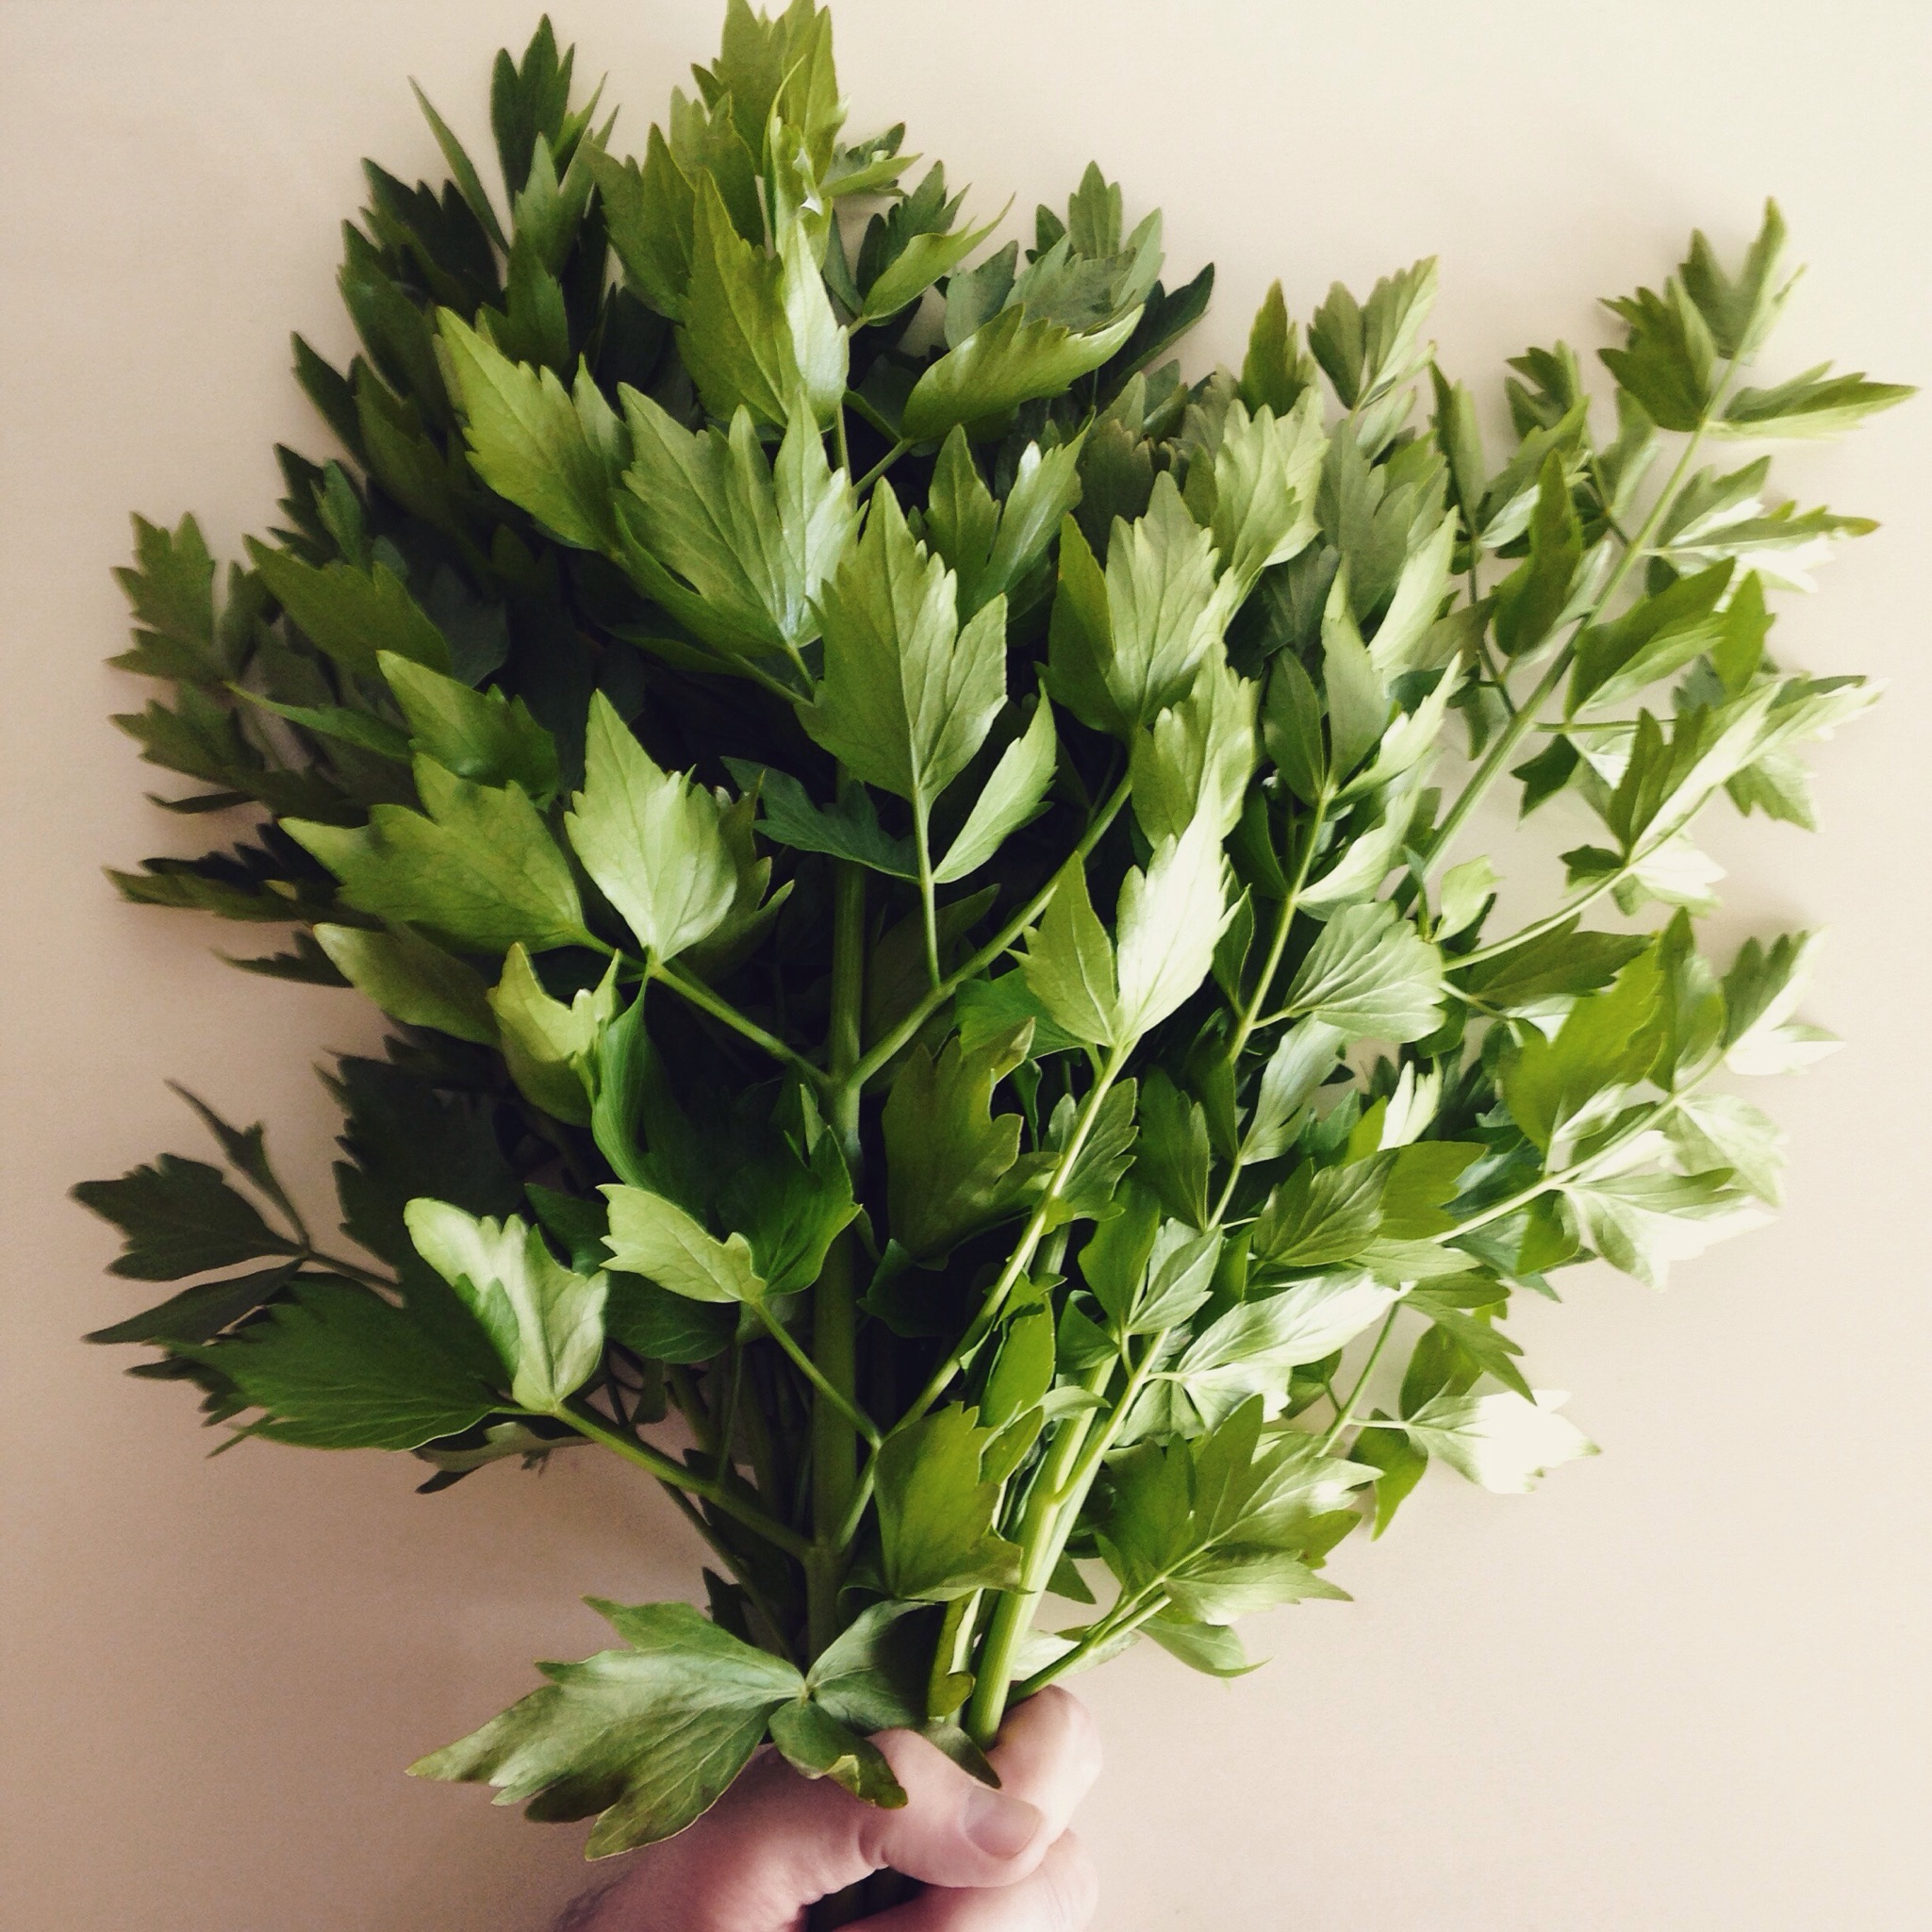 I defy winter and all it stands for with this fistful of lovage from my garden.